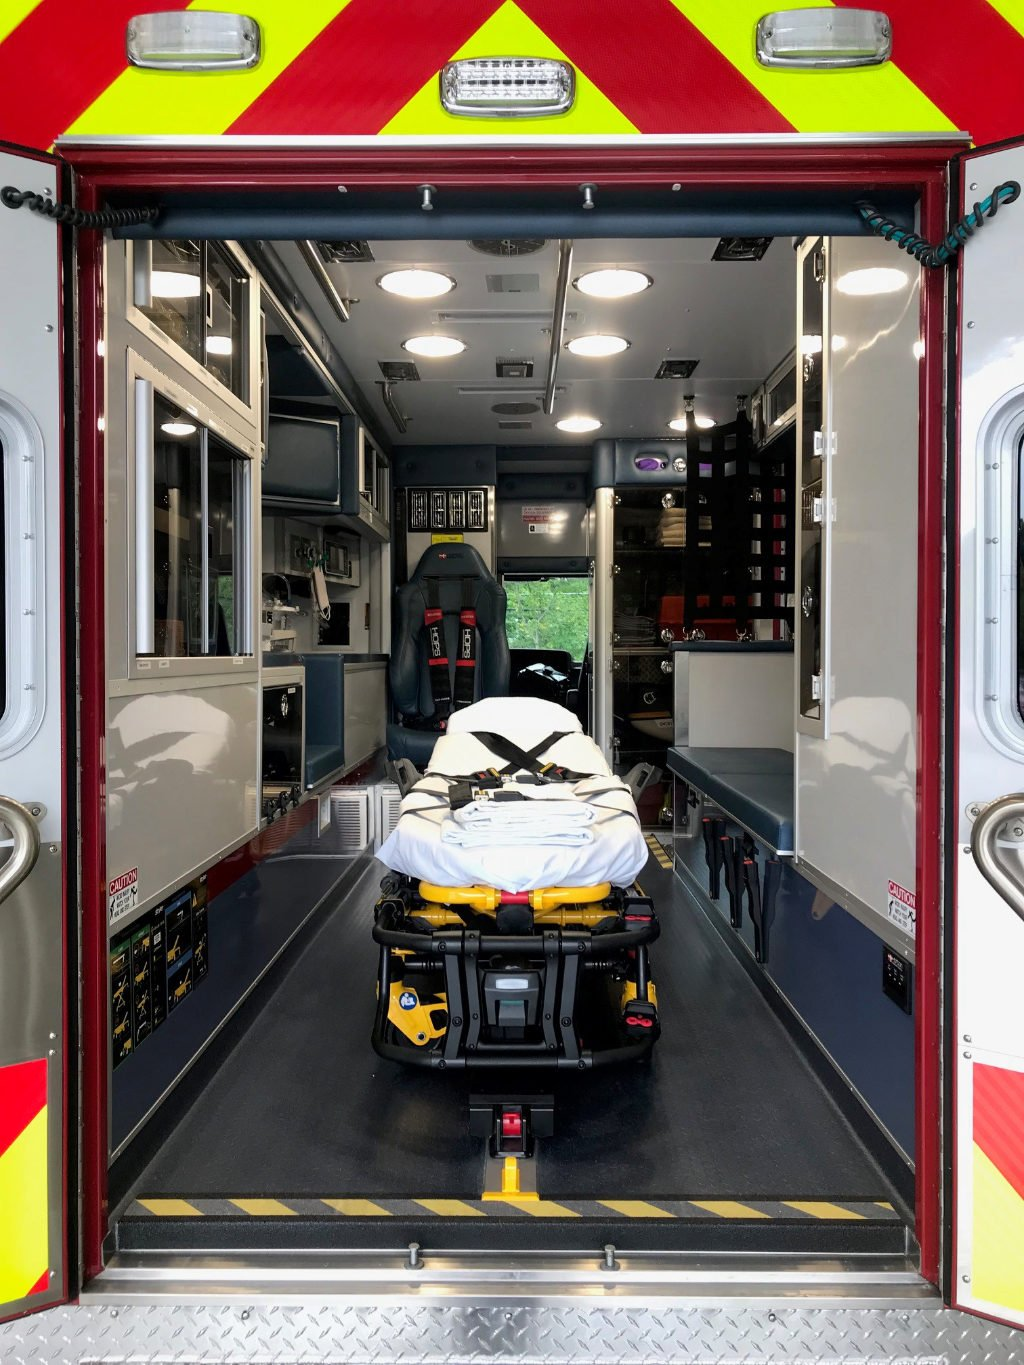 The North Andover ambulance has a Stryker PowerLOAD® fastening system, and a Stryker Power-PRO® XT cot in its walk-through chassis and box.